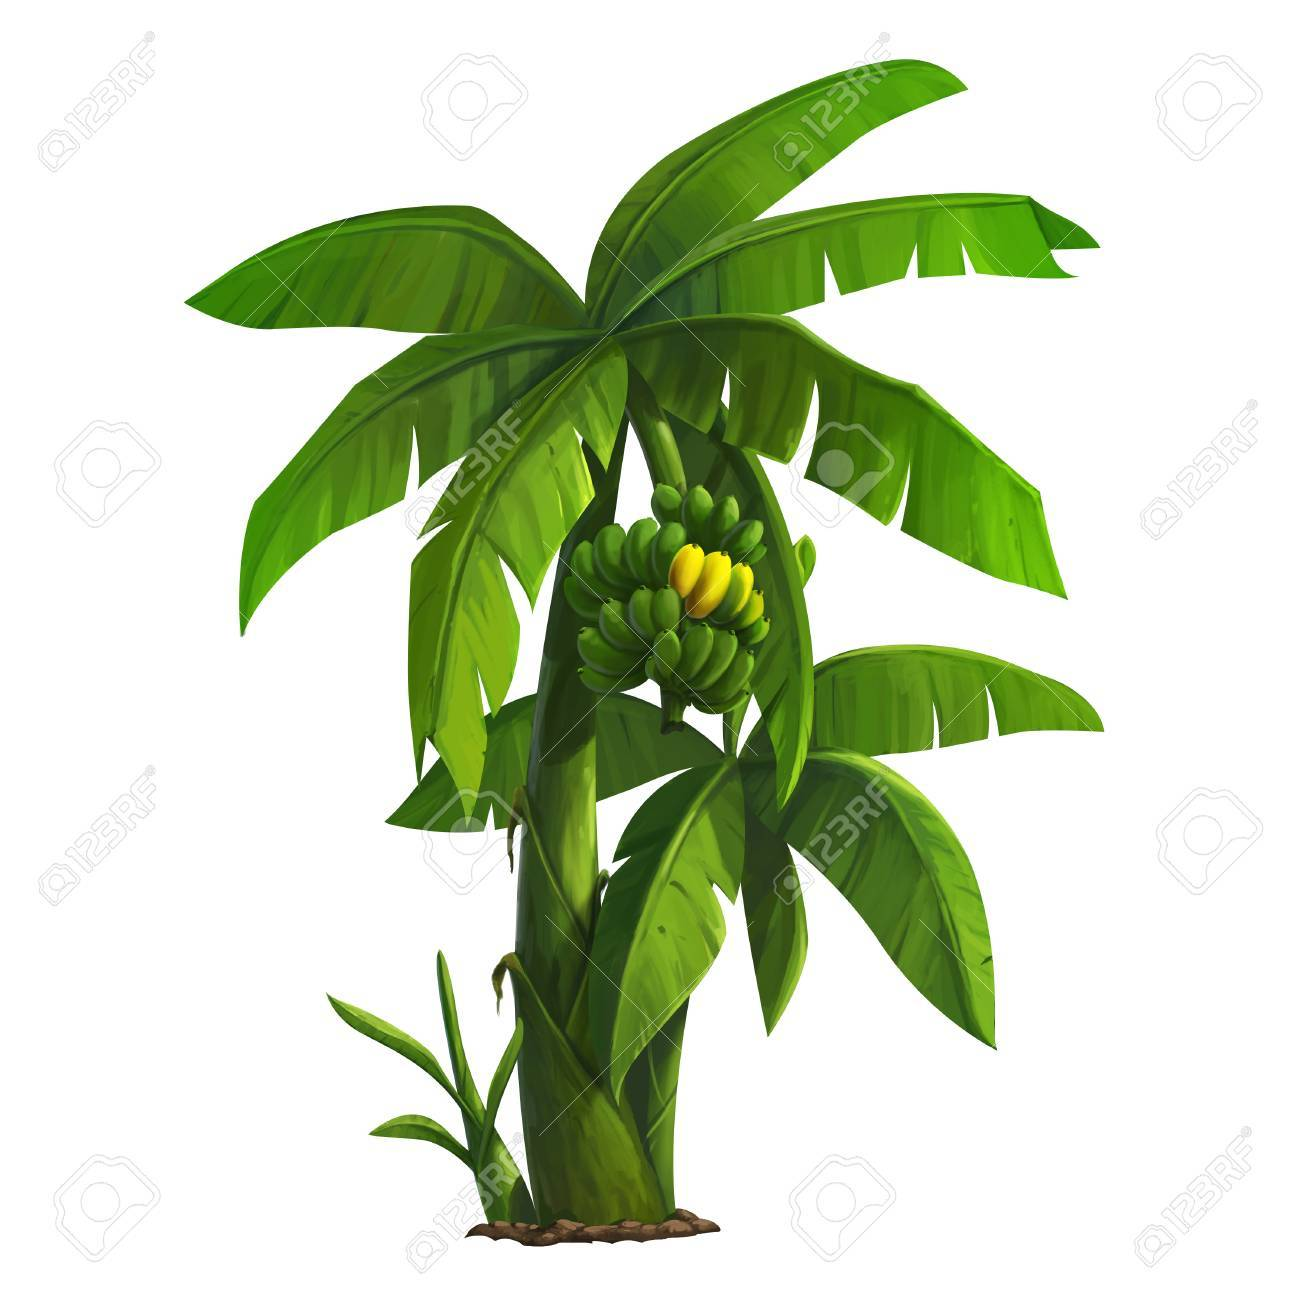 Illustration Of Banana Tree And Ripening Bananas Stock Photo Picture And Royalty Free Image Image 46526667